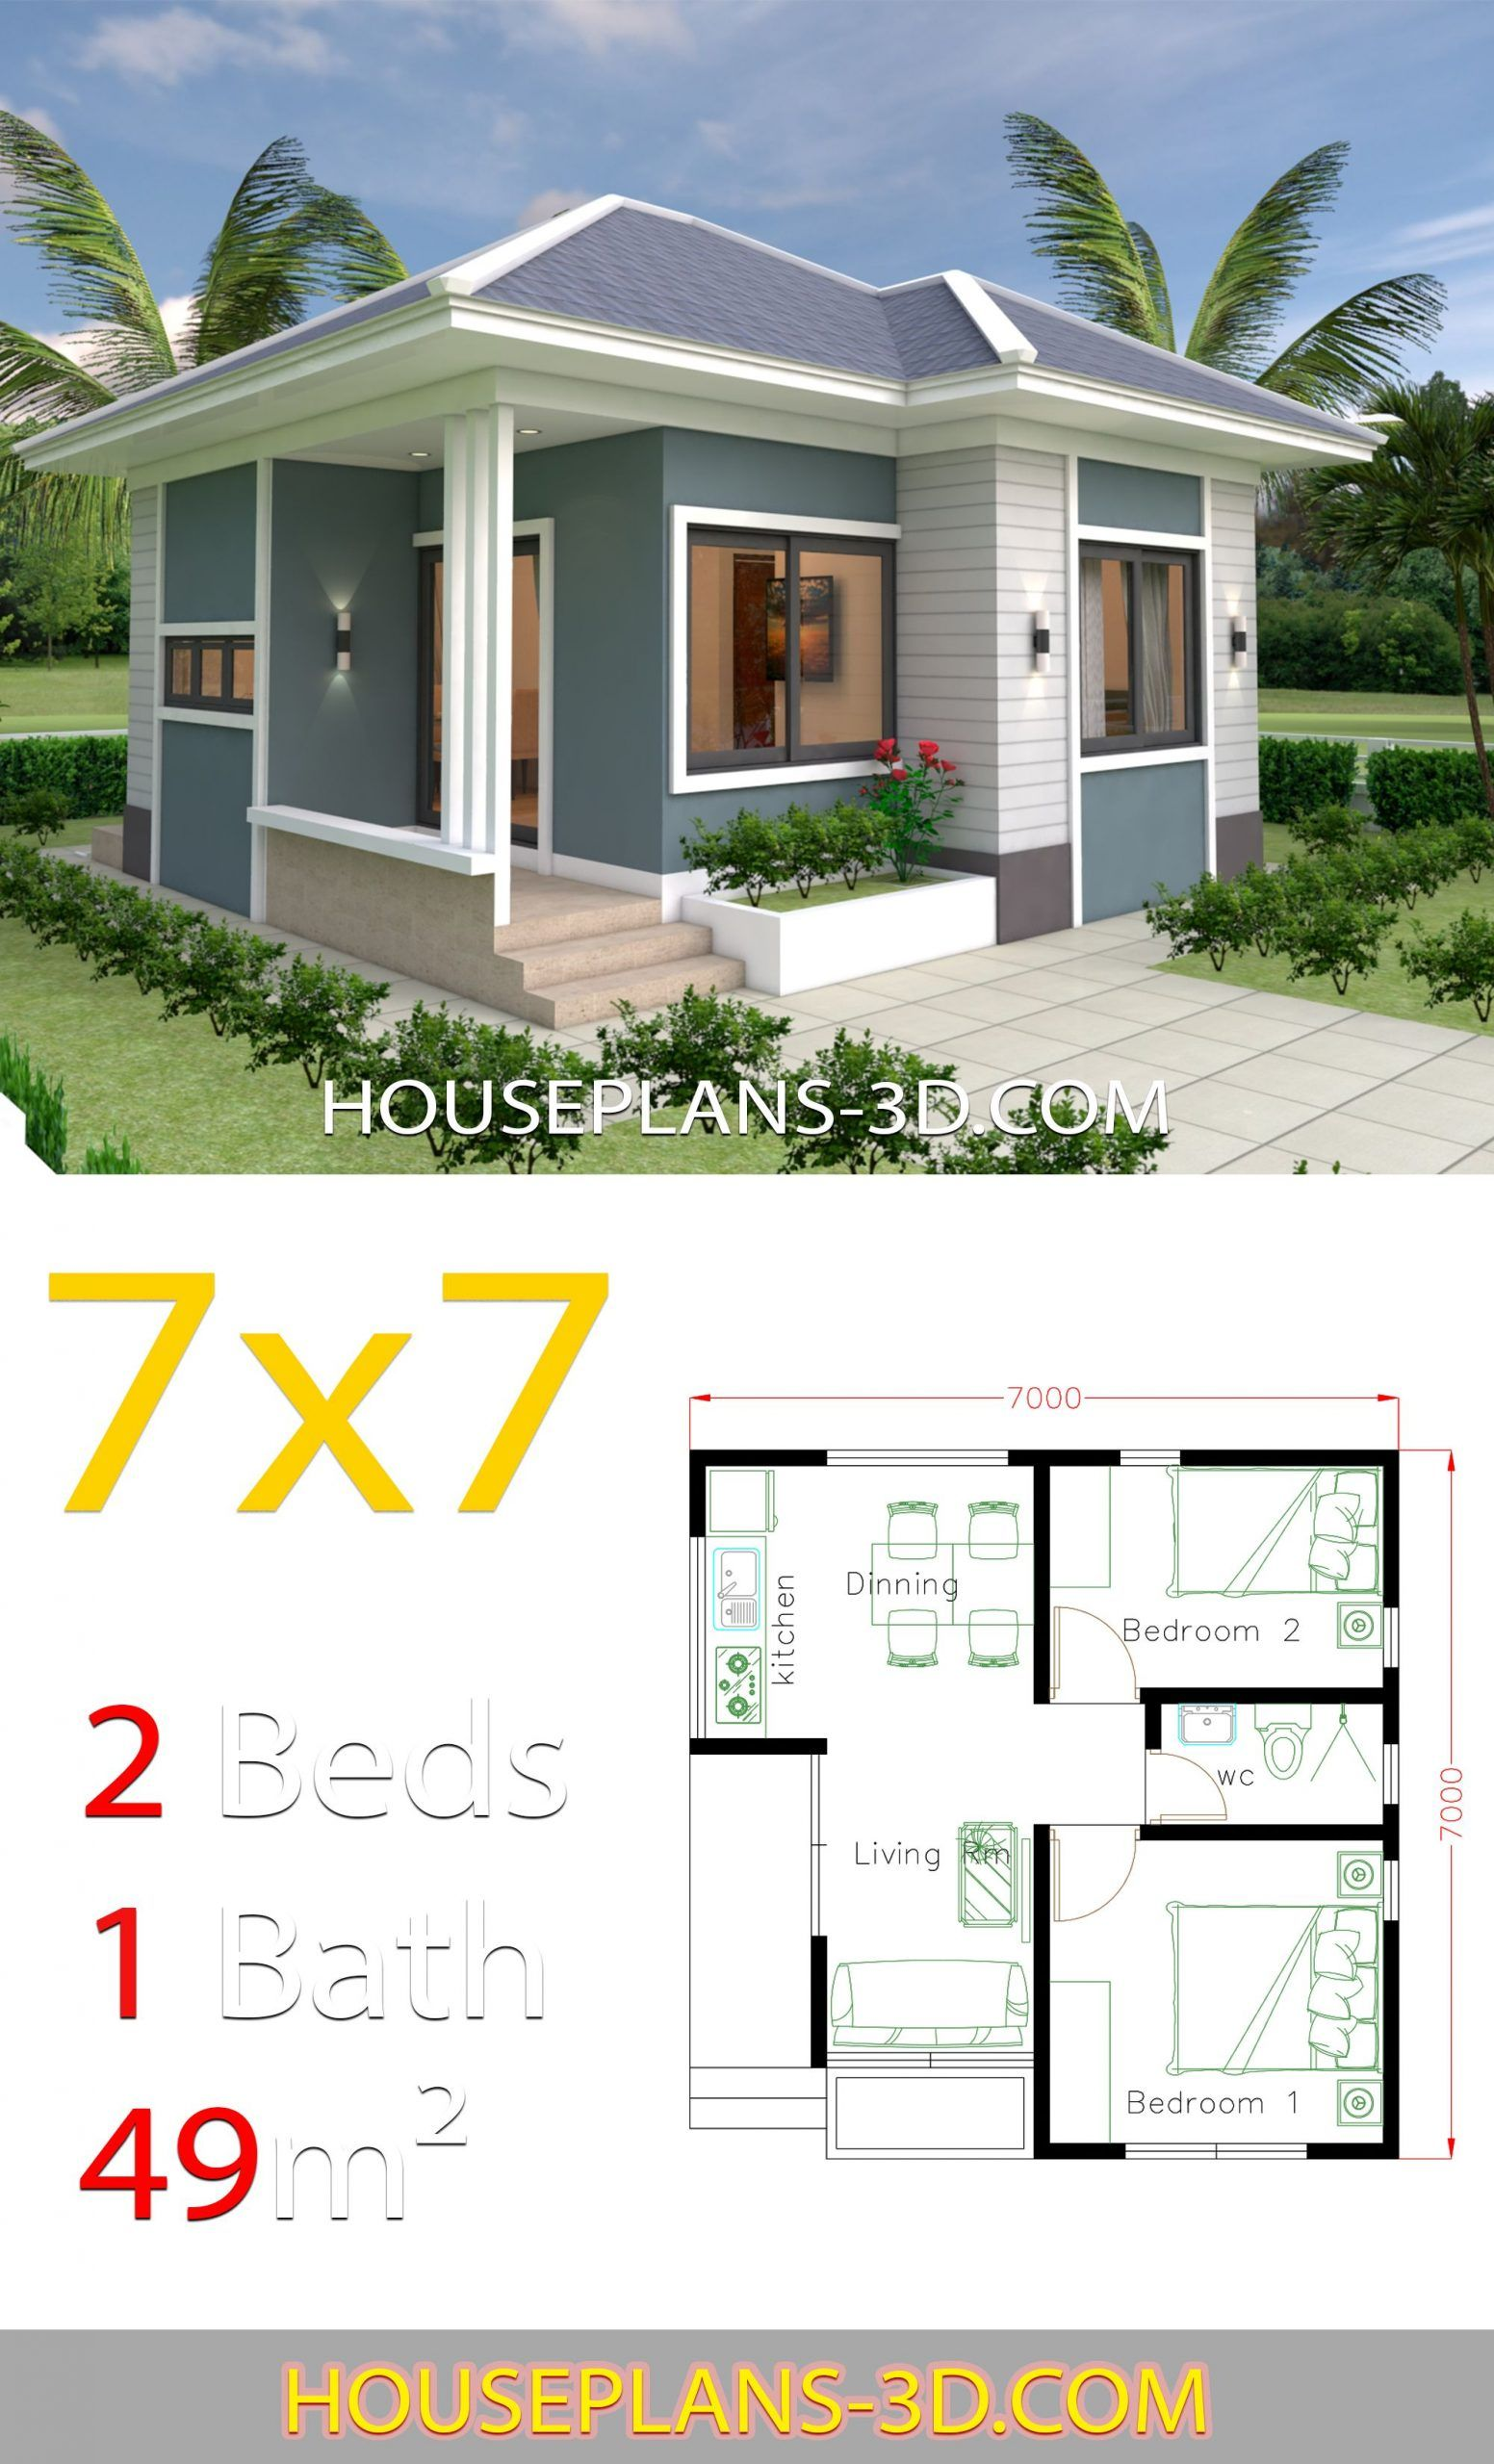 House Design 7 7 With 2 Bedrooms Full Plans In 2020 Small House Design Plans Small House Layout Small House Design